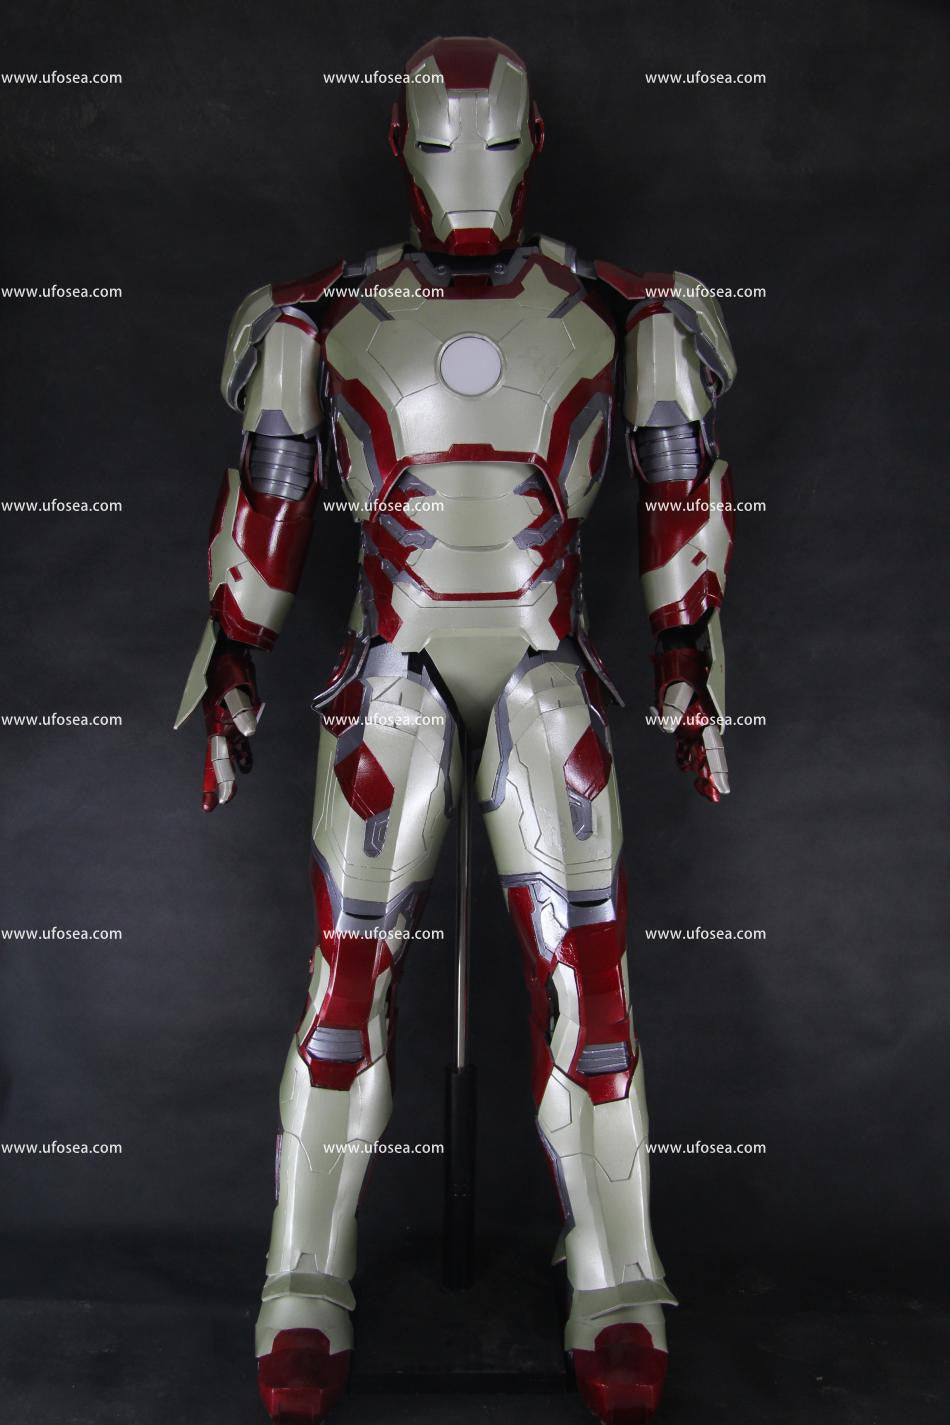 Iron Man 3 Armor Tony Stark mk42 Armor Private custom